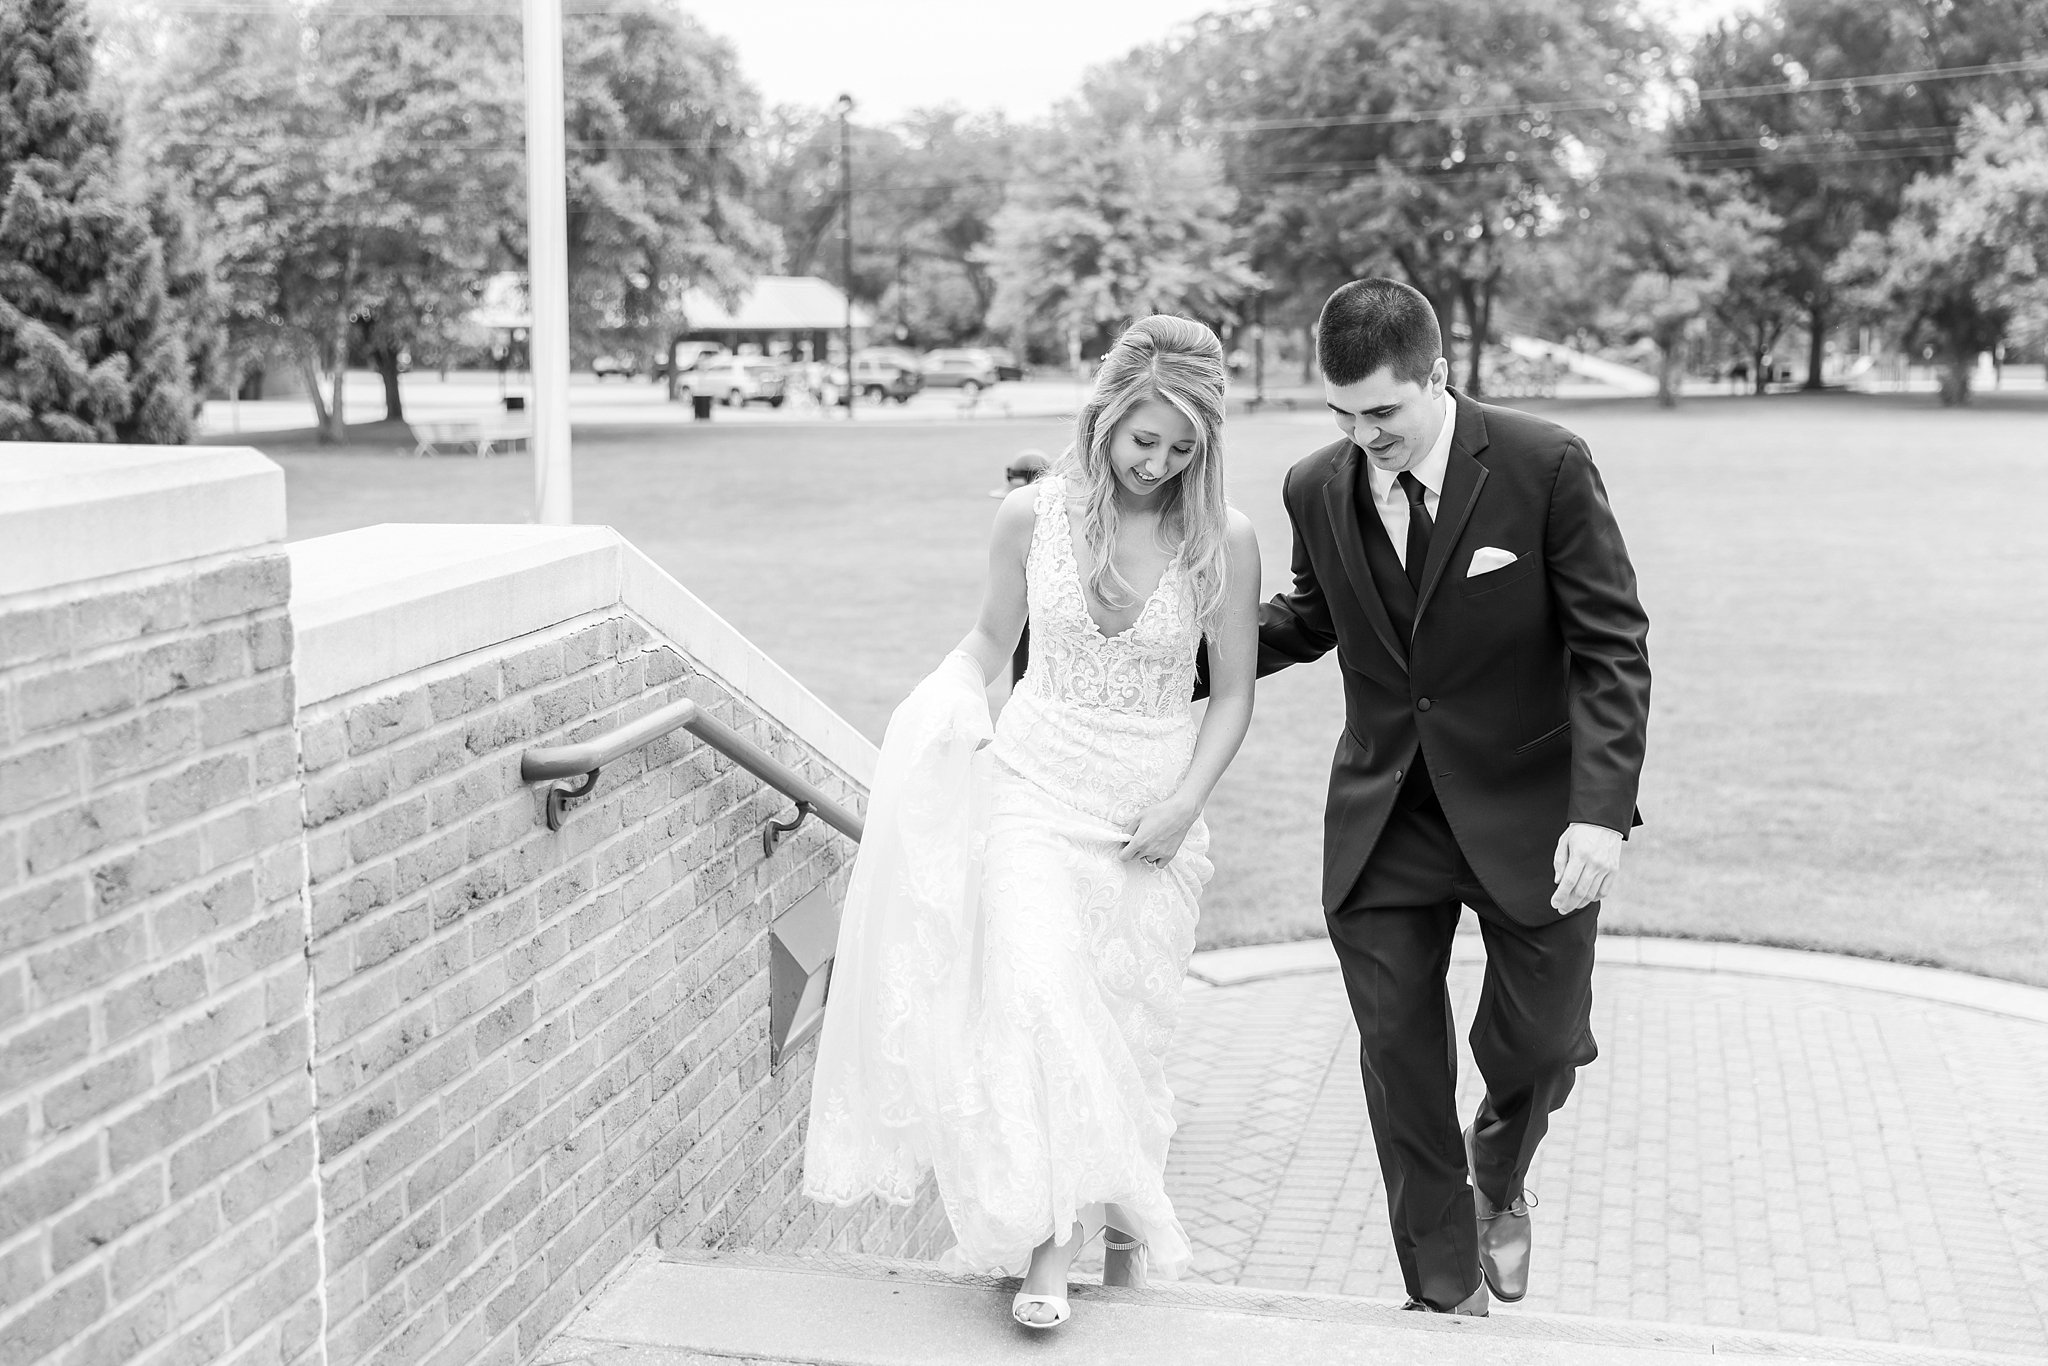 candid-romantic-wedding-photos-at-the-h-hotel-in-midland-michigan-by-courtney-carolyn-photography_0035.jpg